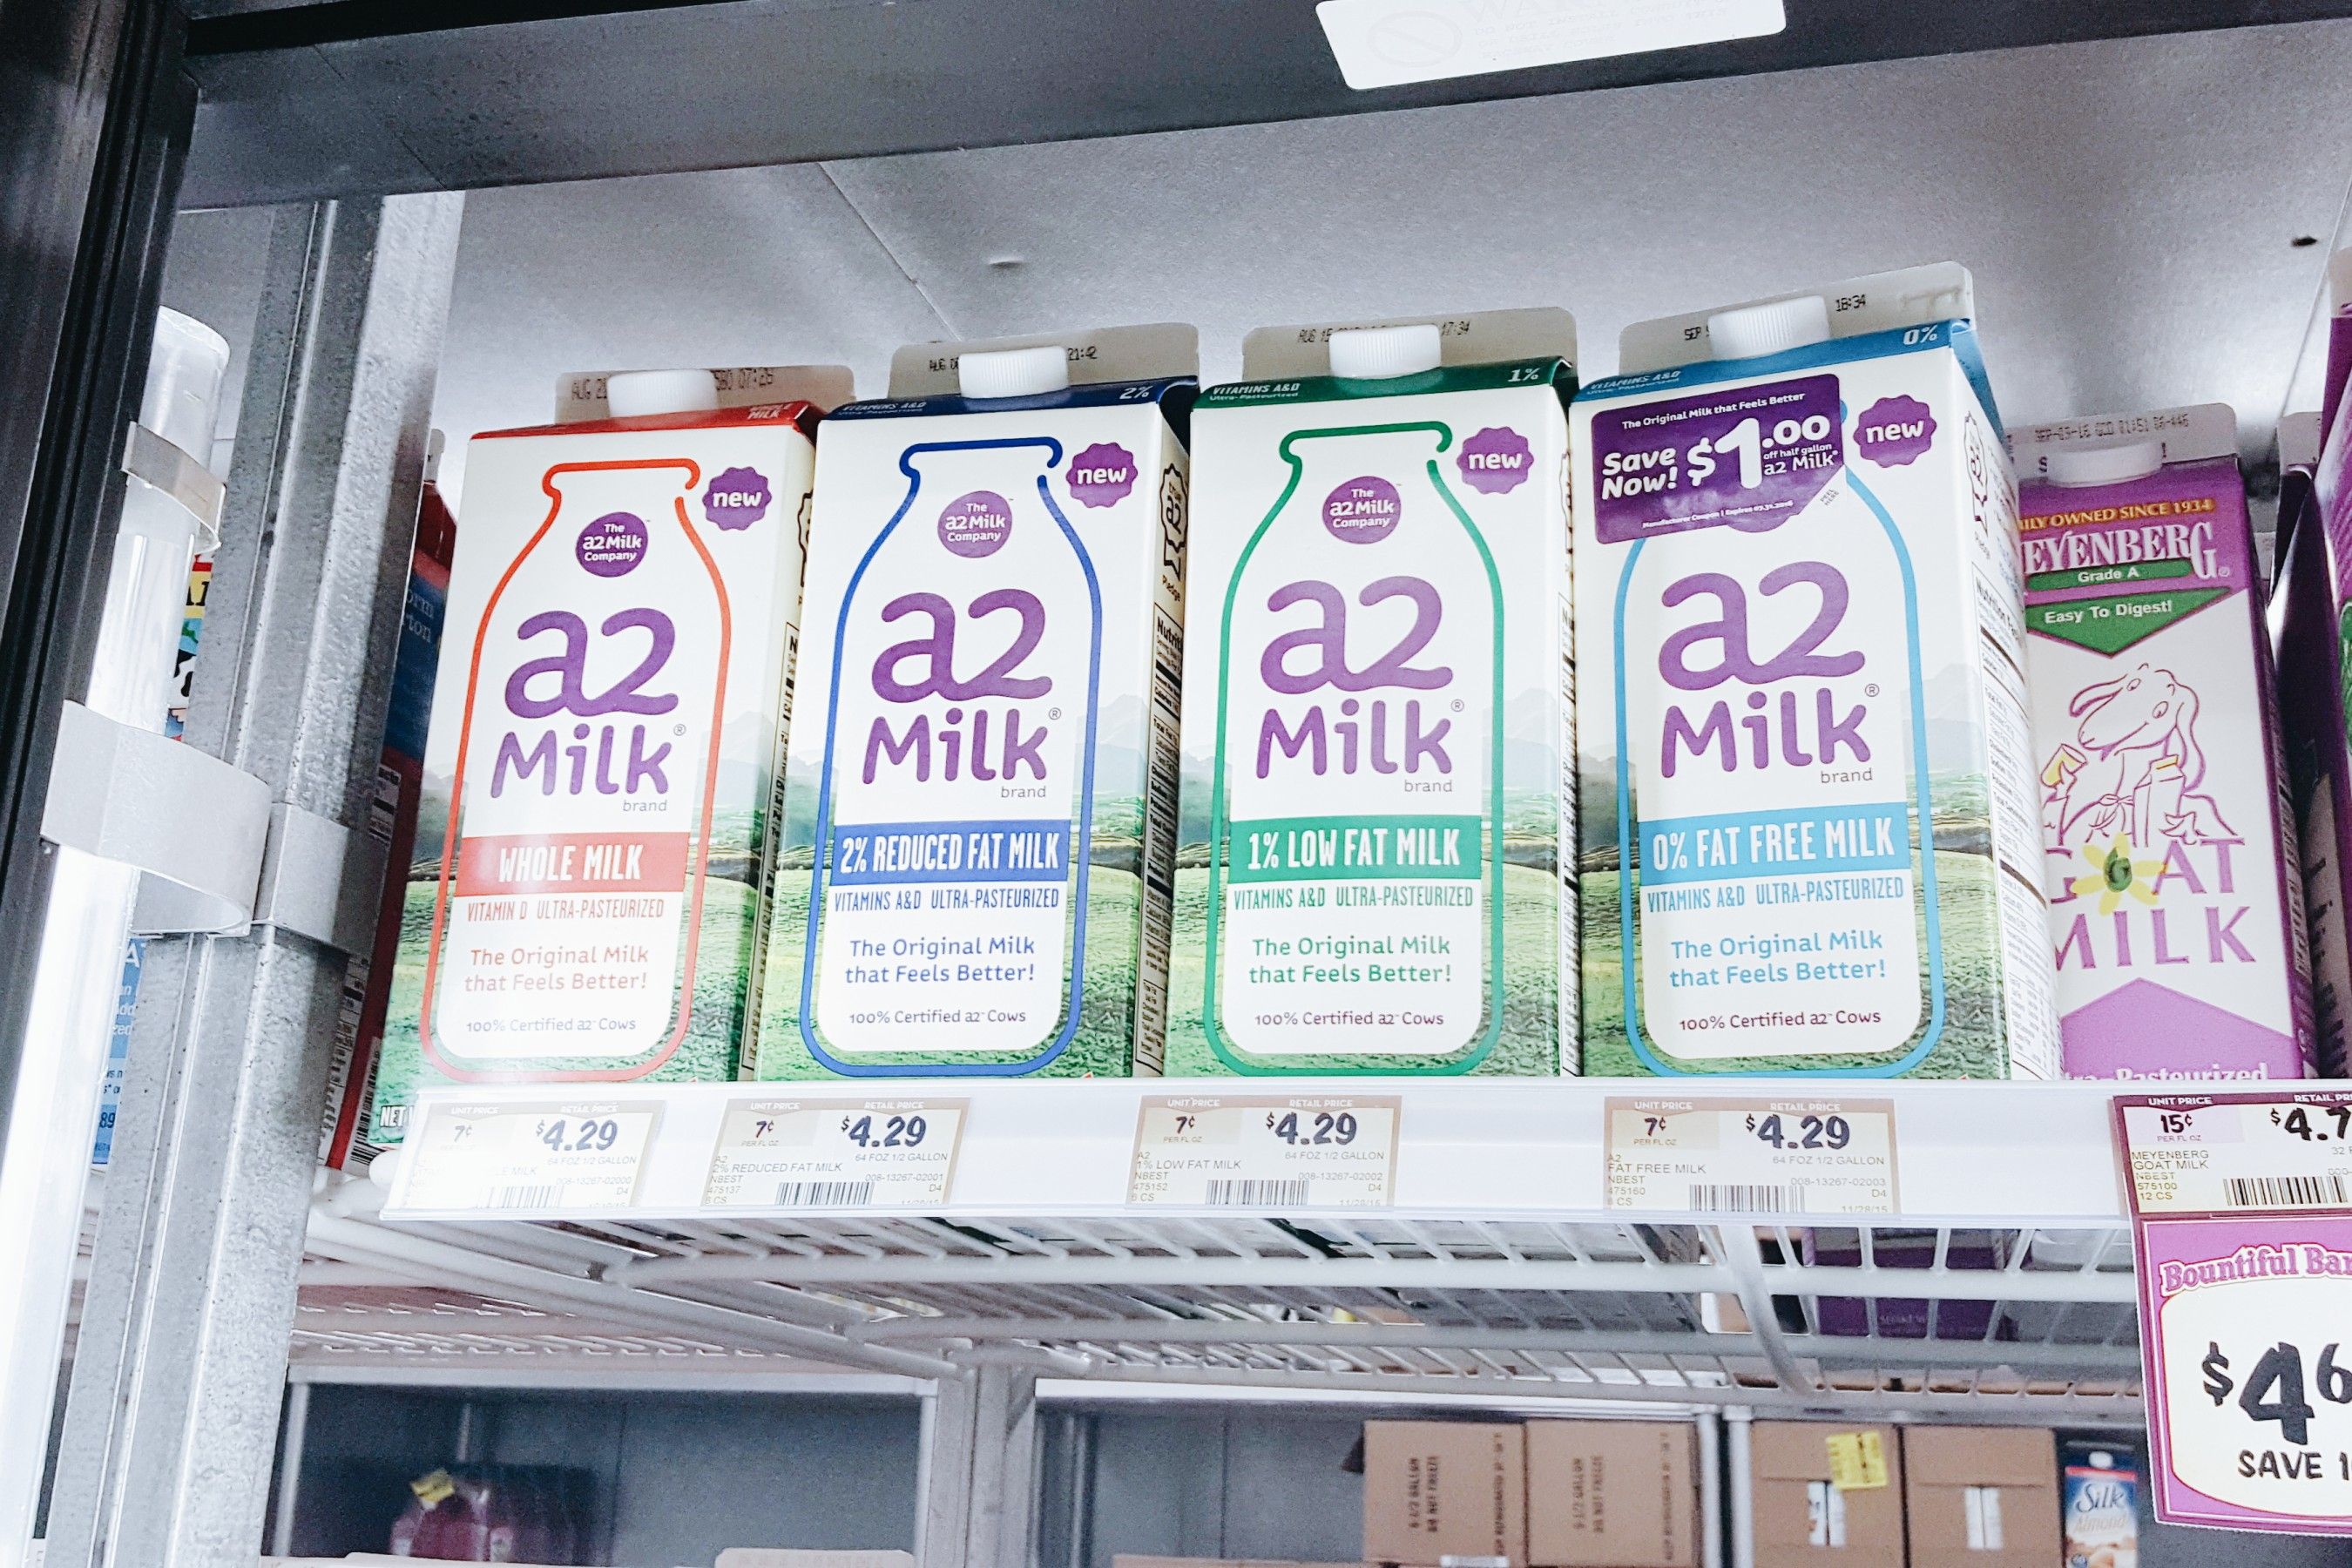 #A2milk available in retailers #IC #ad